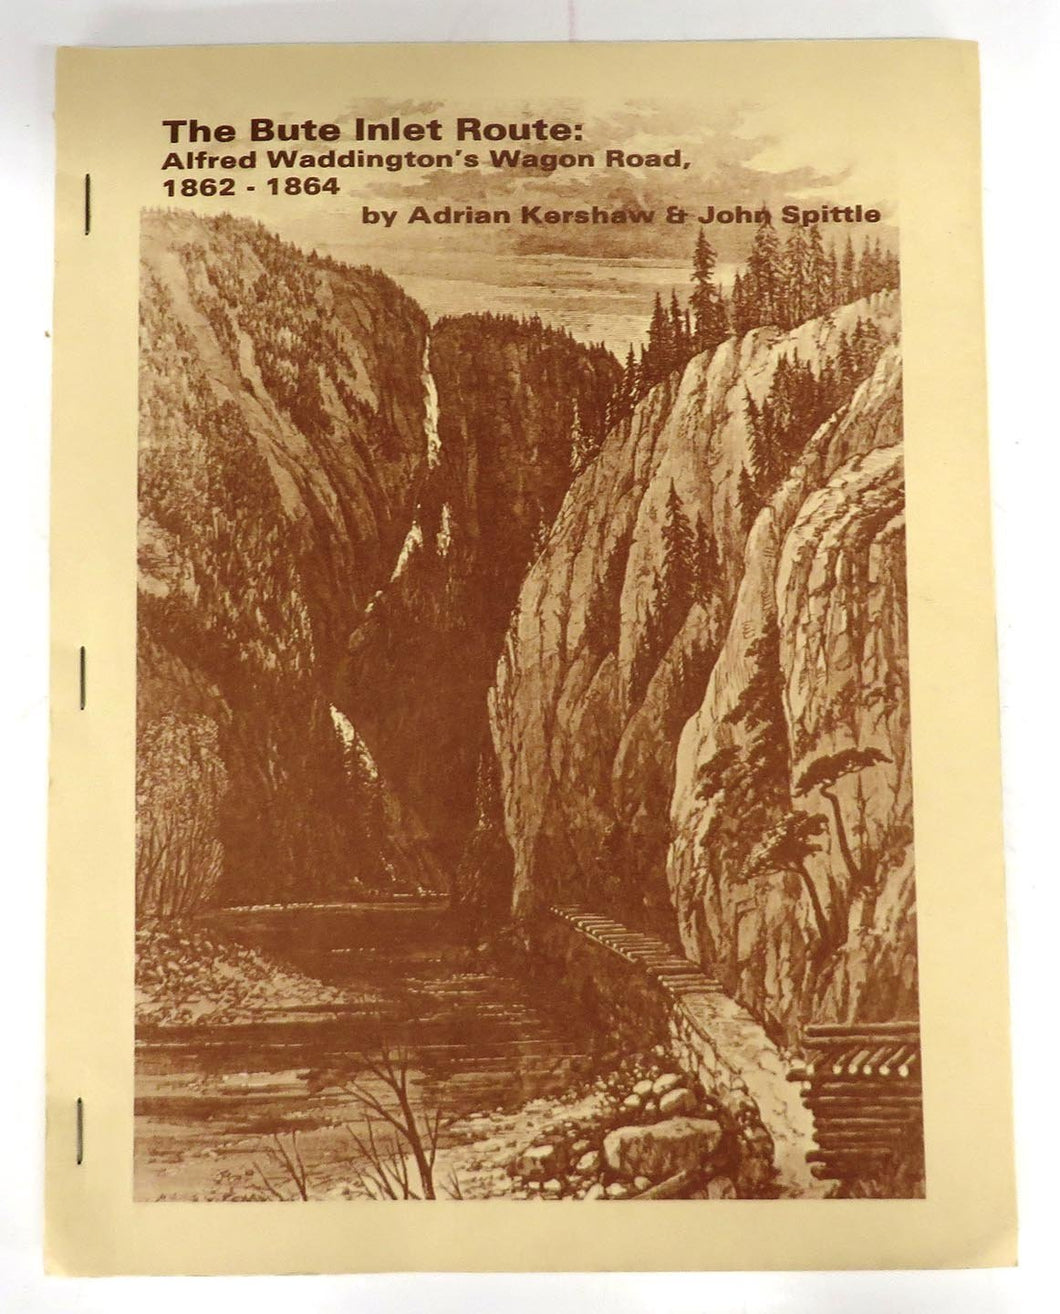 The Bute Inlet Route: Alfred Waddington's Wagon Road, 1862-1864